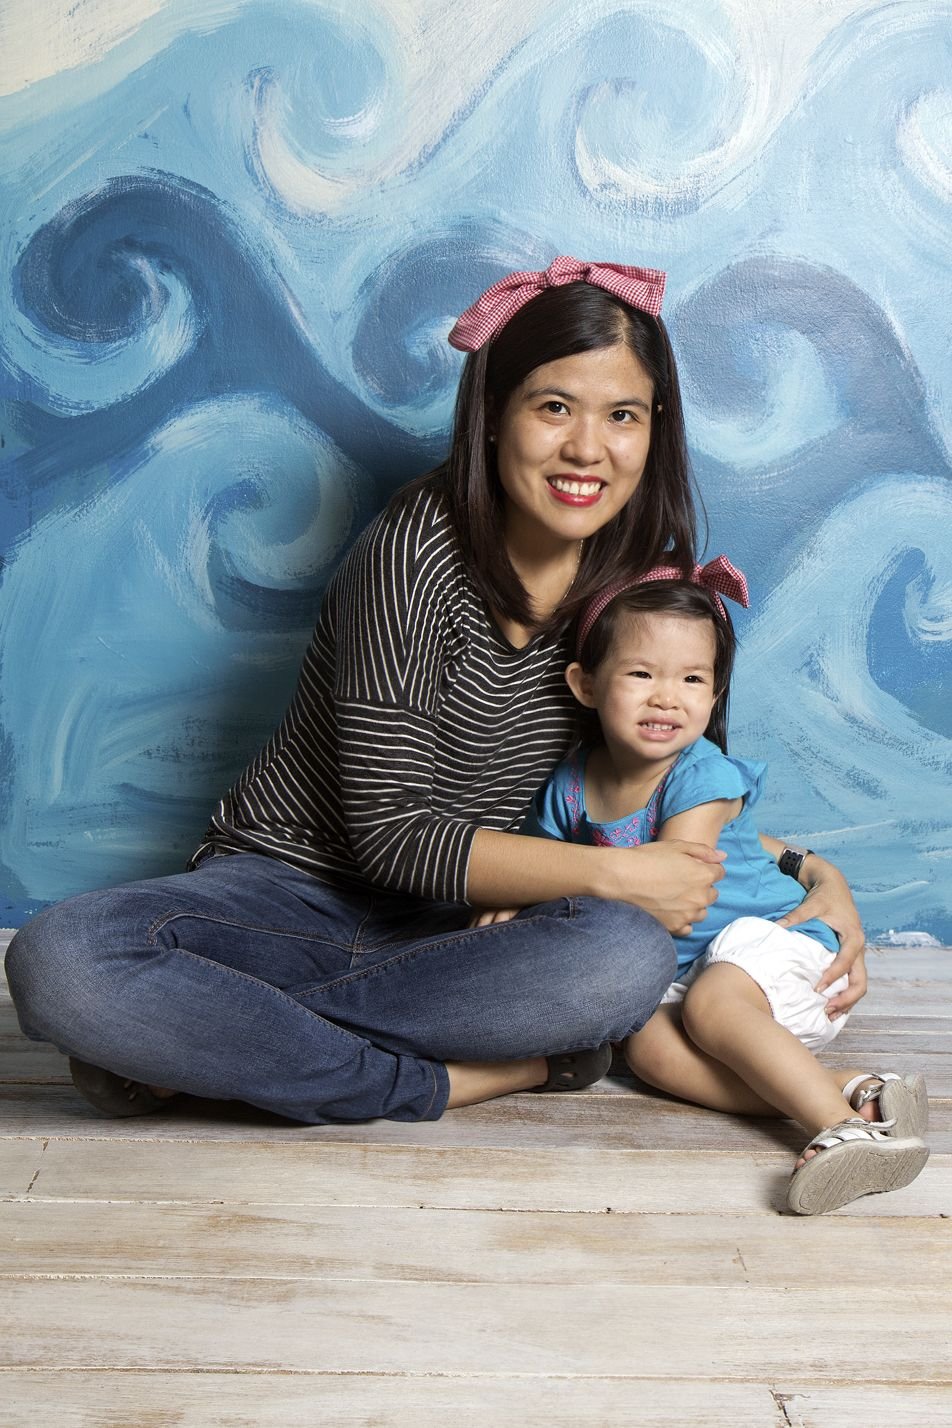 themed photo studio